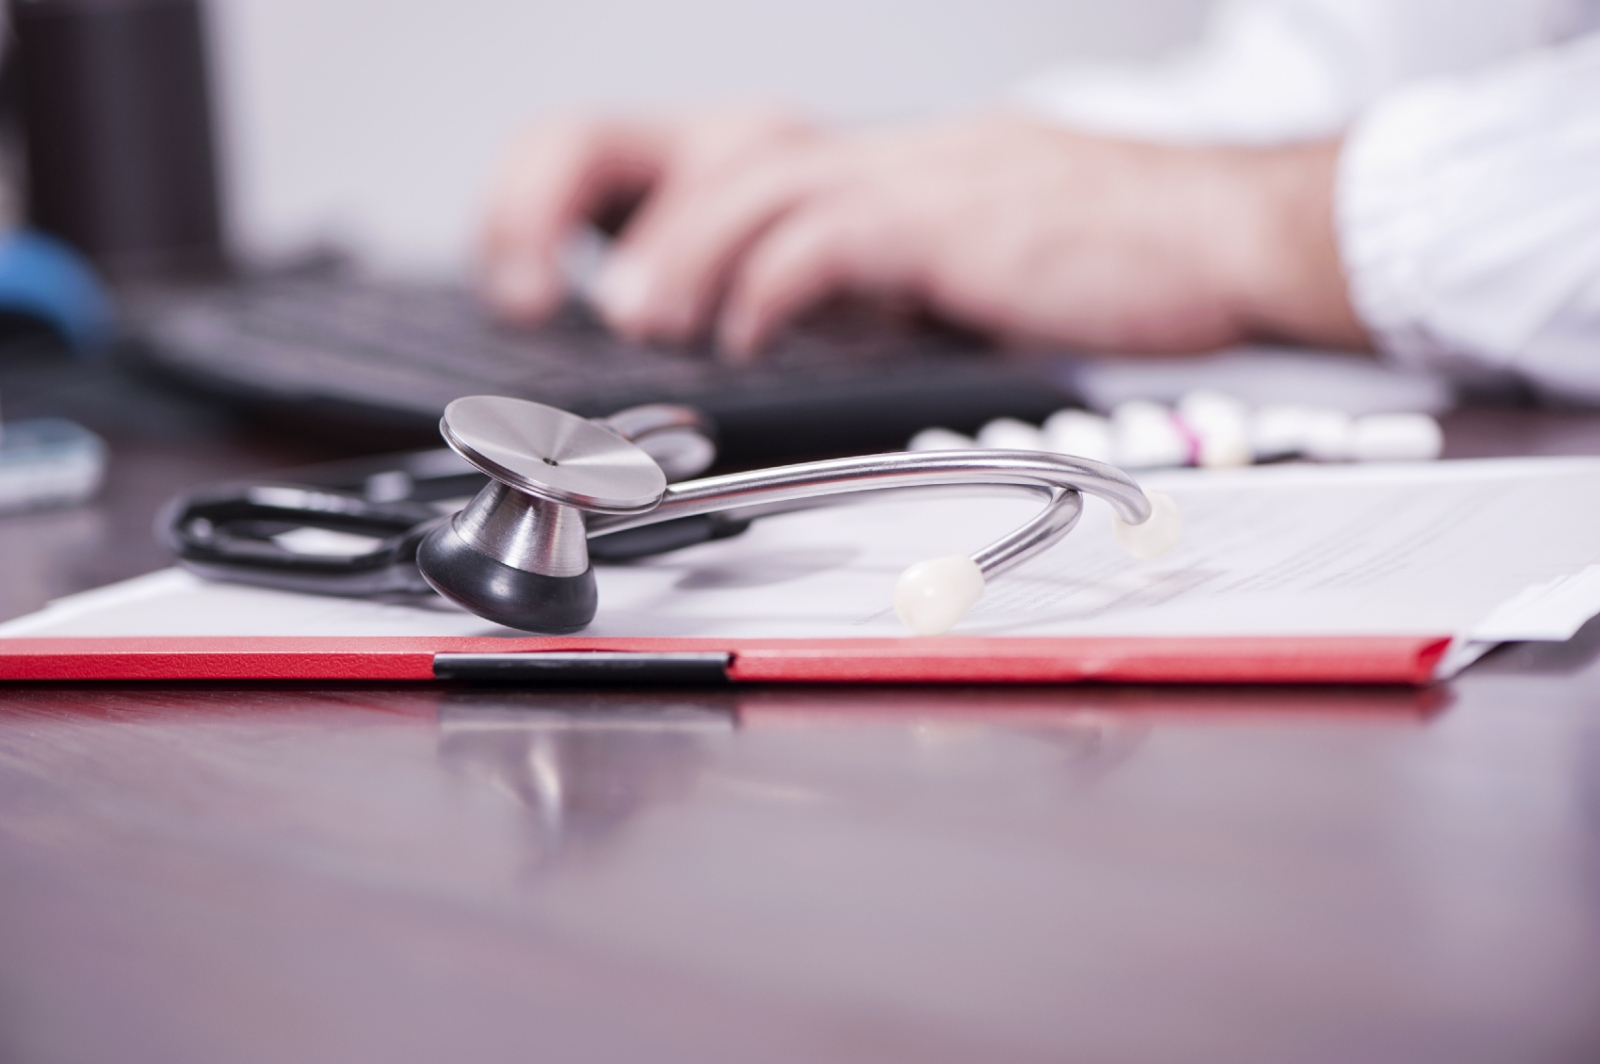 Doctors Outperform Apps at Diagnosing Health Problems